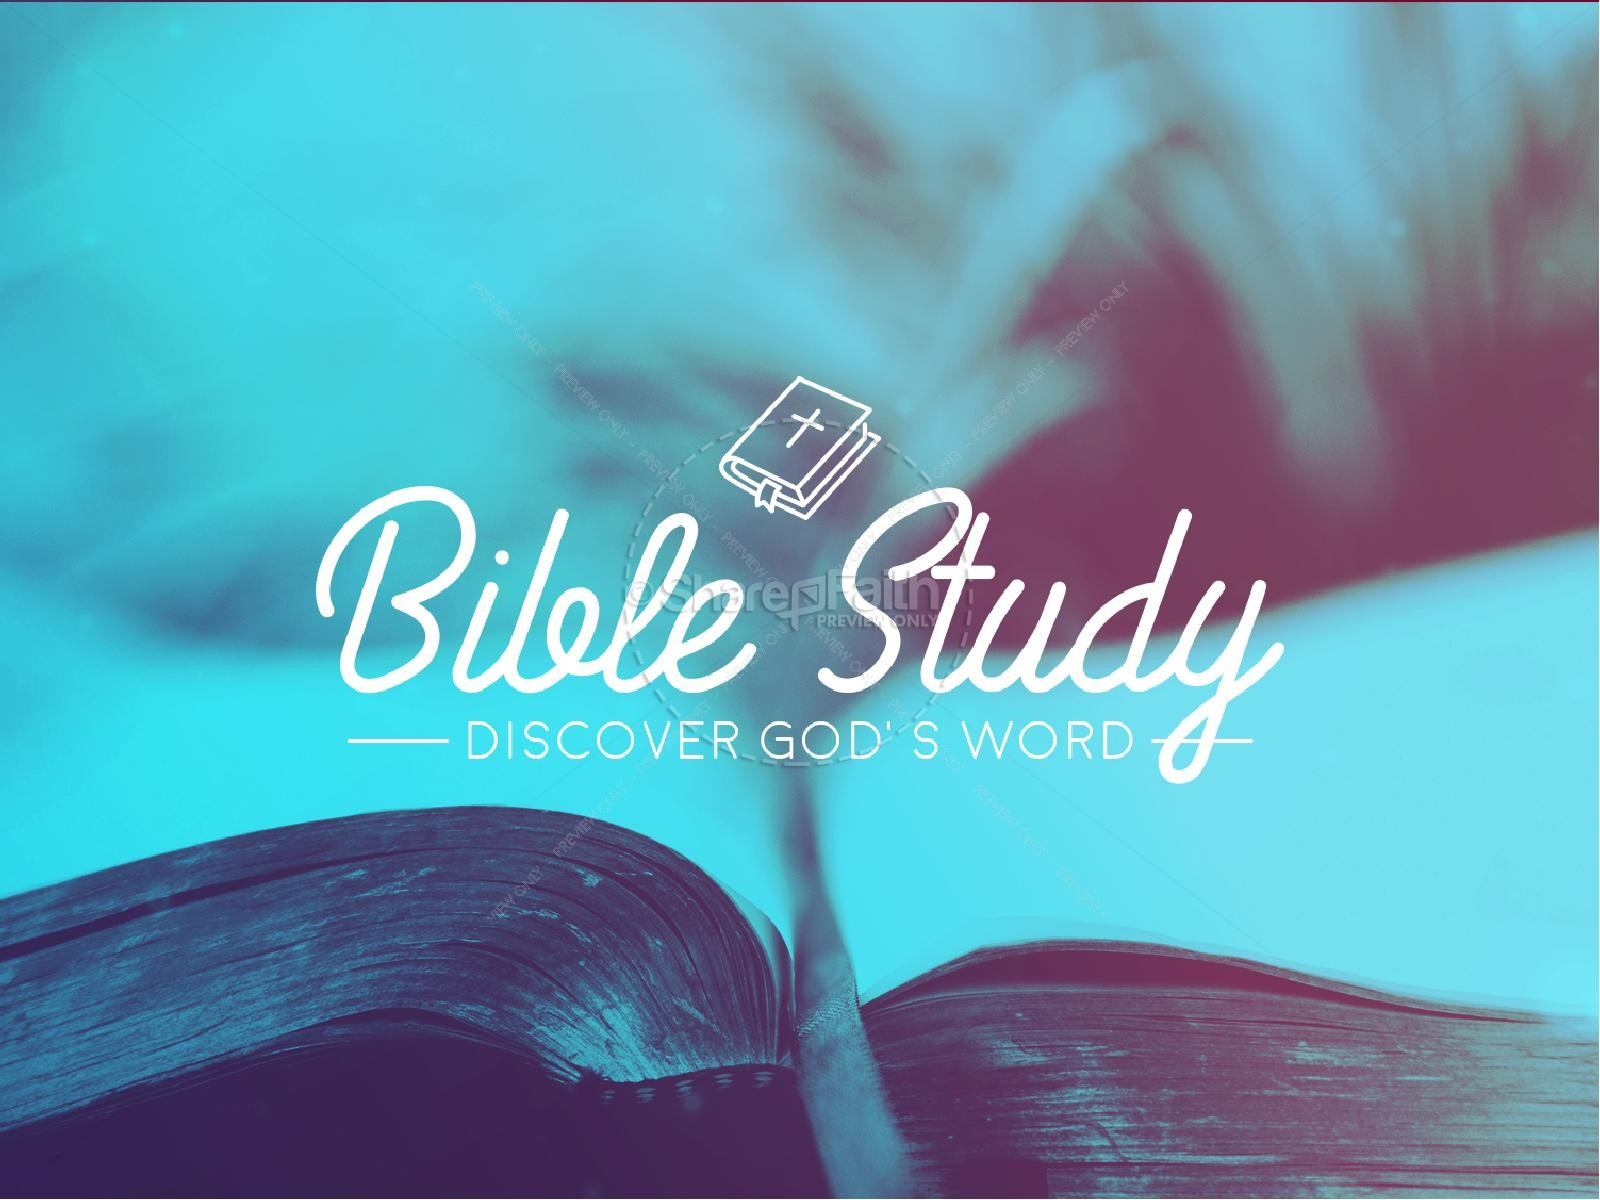 Bible Study PowerPoint PPT Presentations - powershow.com